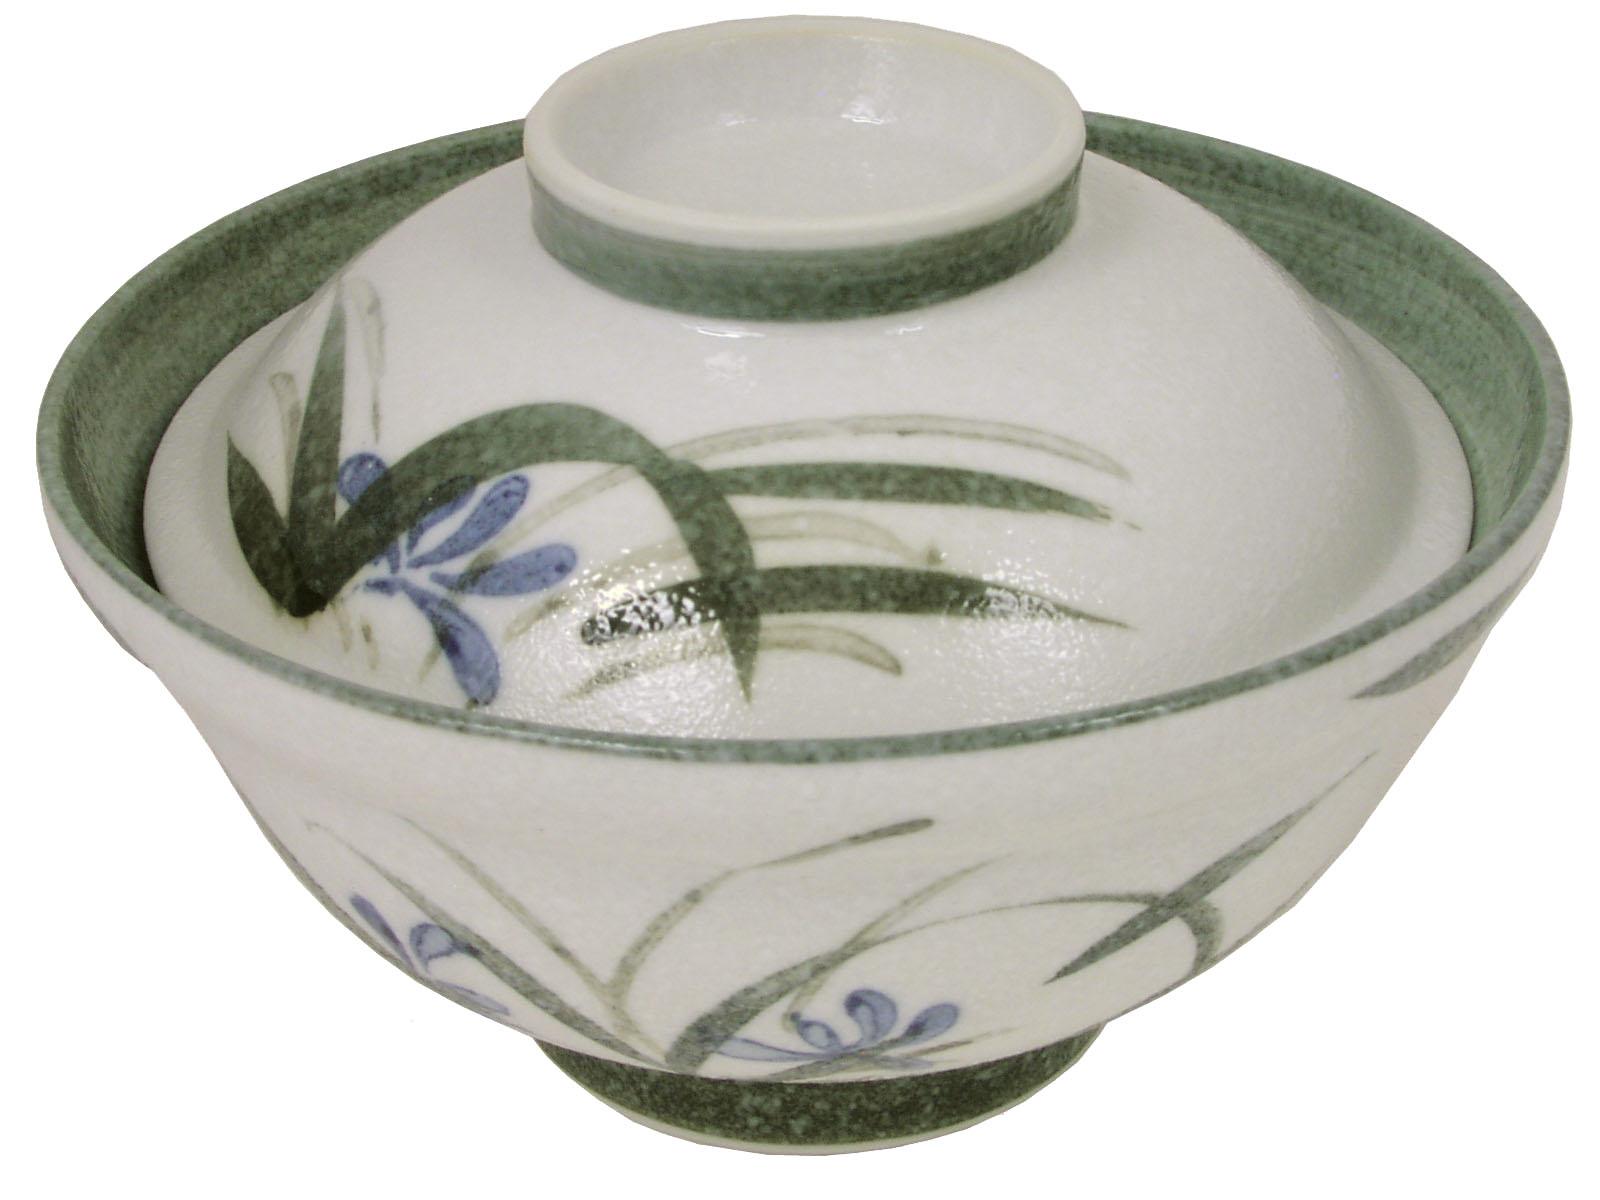 Single Serving White And Green Floral Donburi Bowl